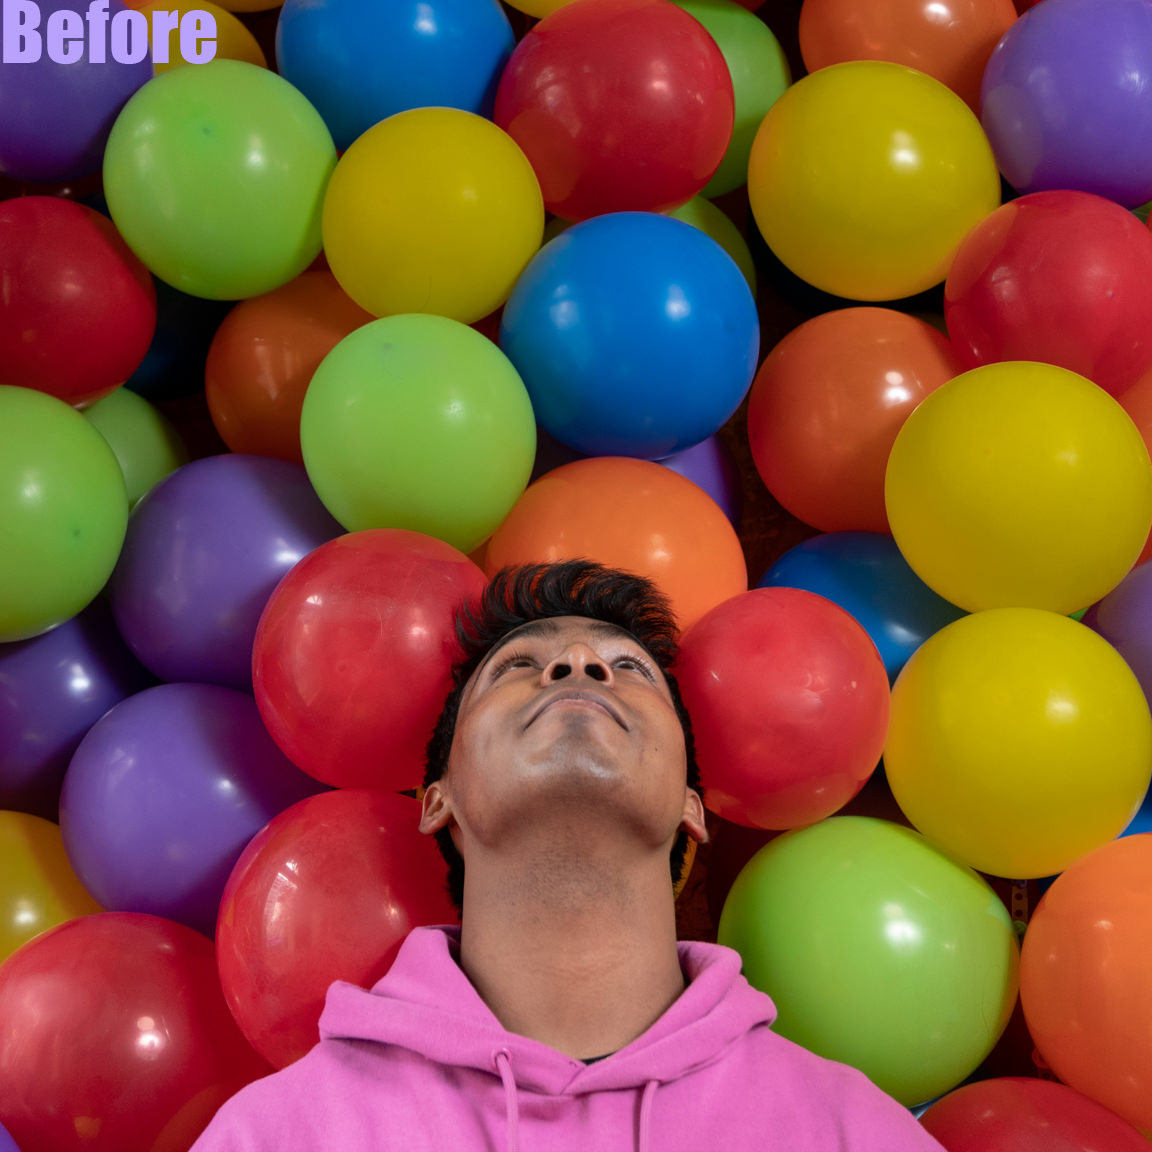 before edit-guy with balloons